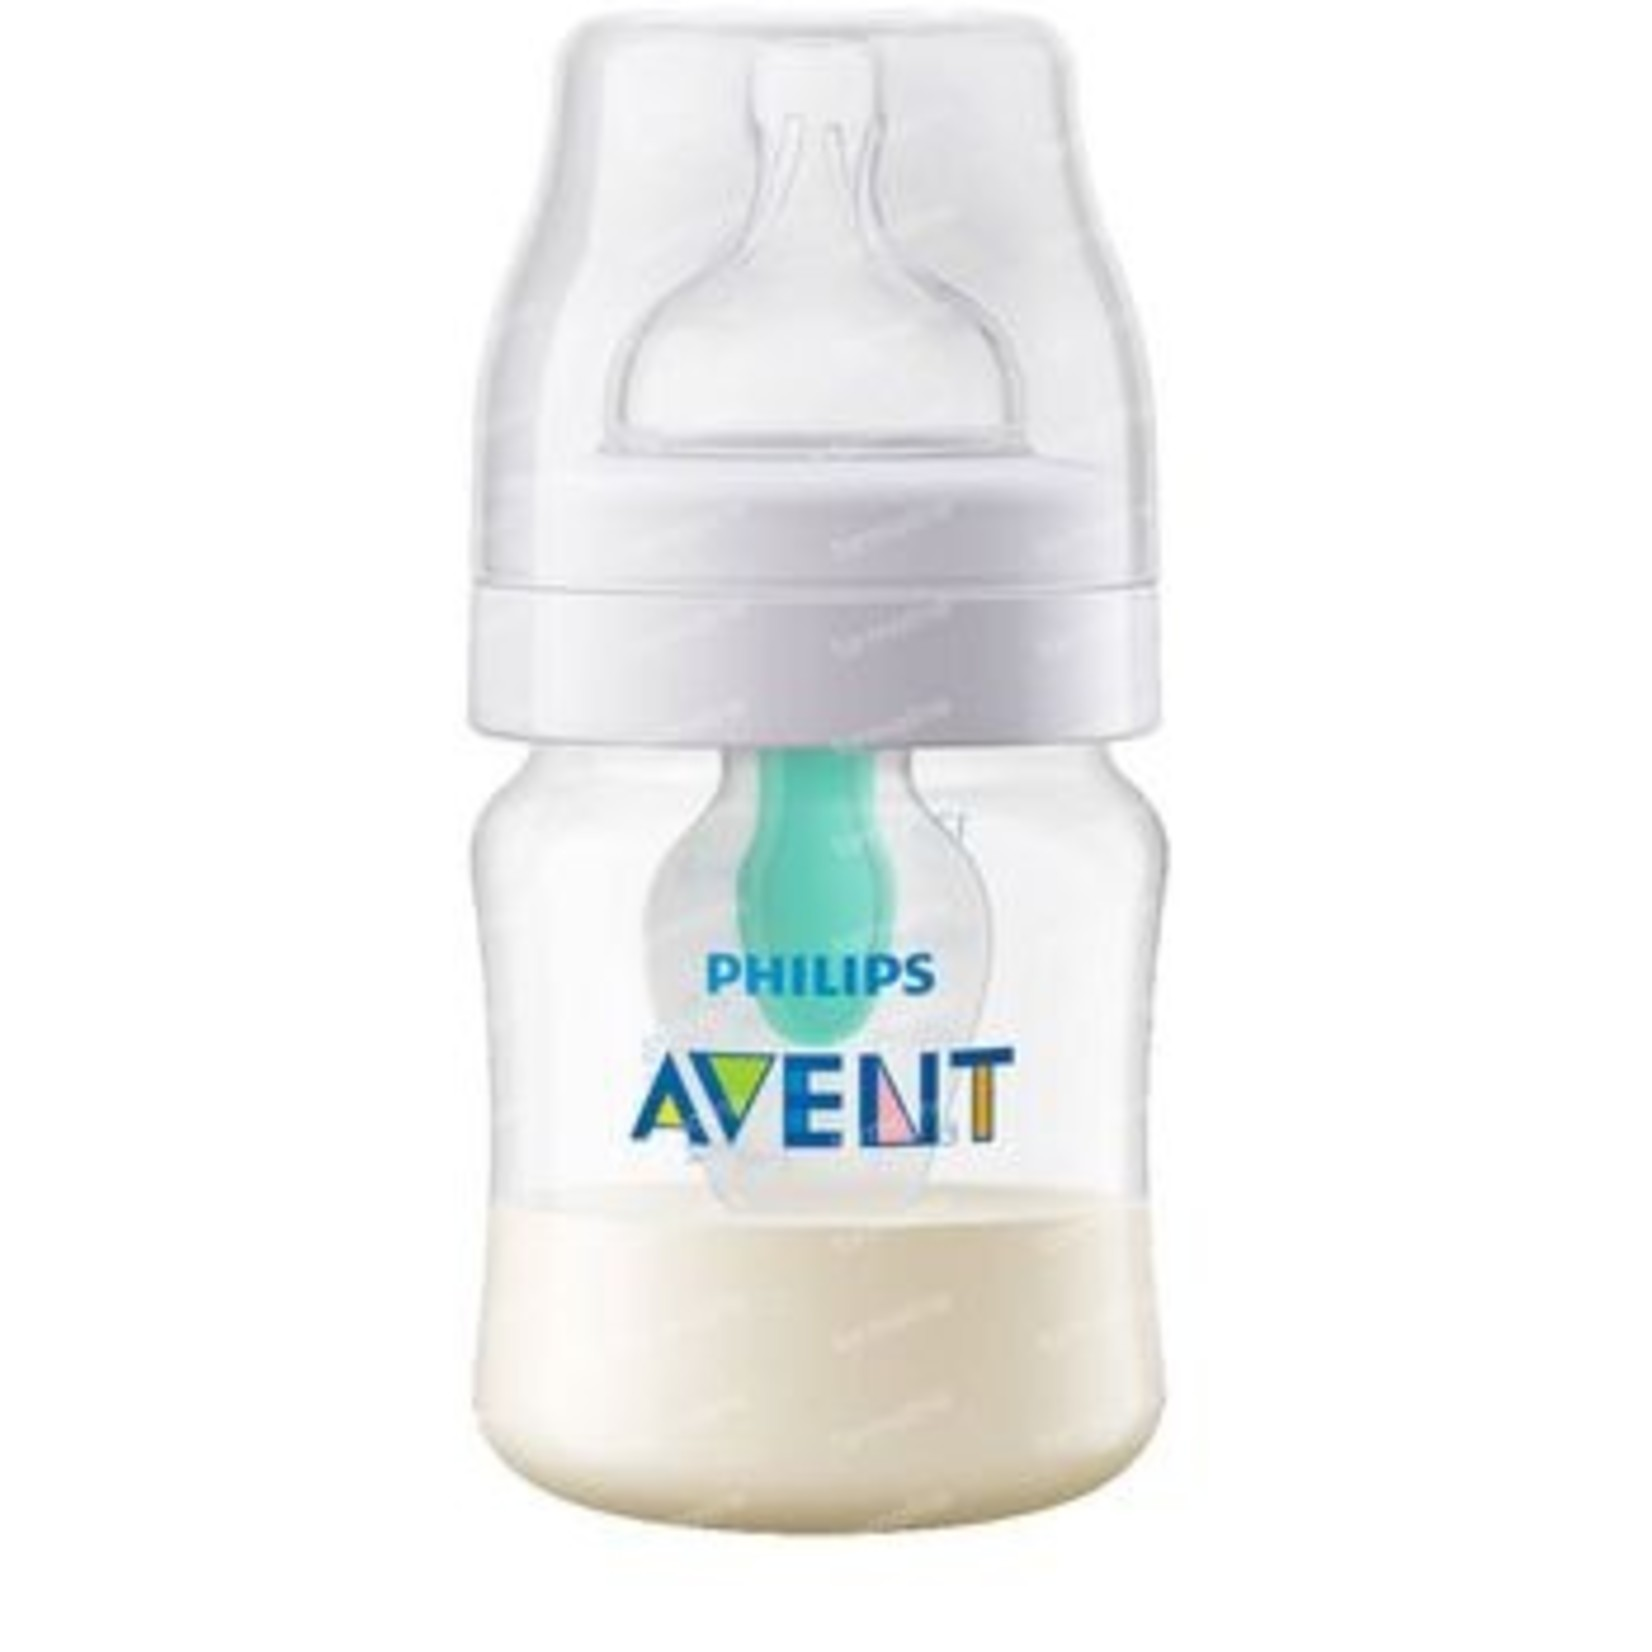 Avent Avent Anti-colic zuigfles 125ml